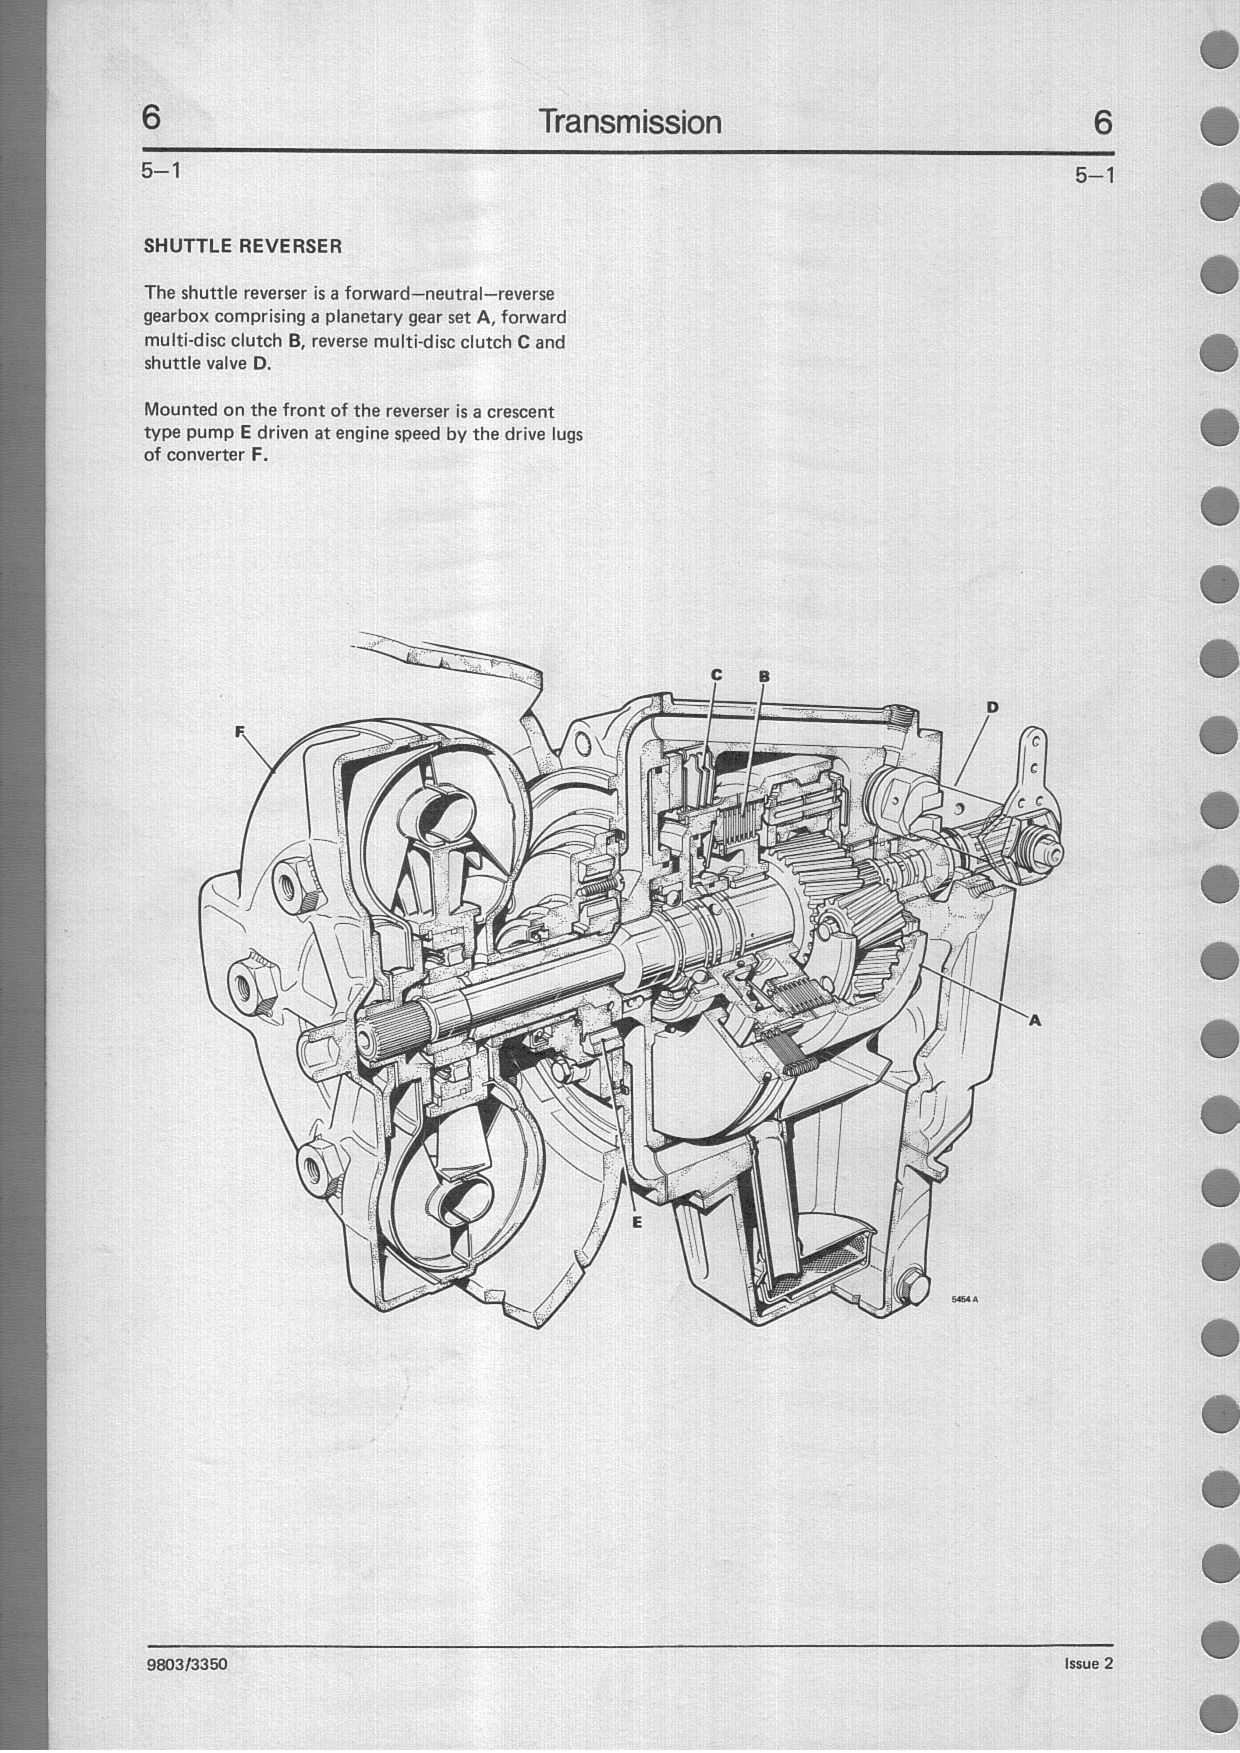 Jcb 1400b Backhoe Wiring Diagram Opinions About 926 Fork Lift Schematic 214s Robot Odicis Specifications